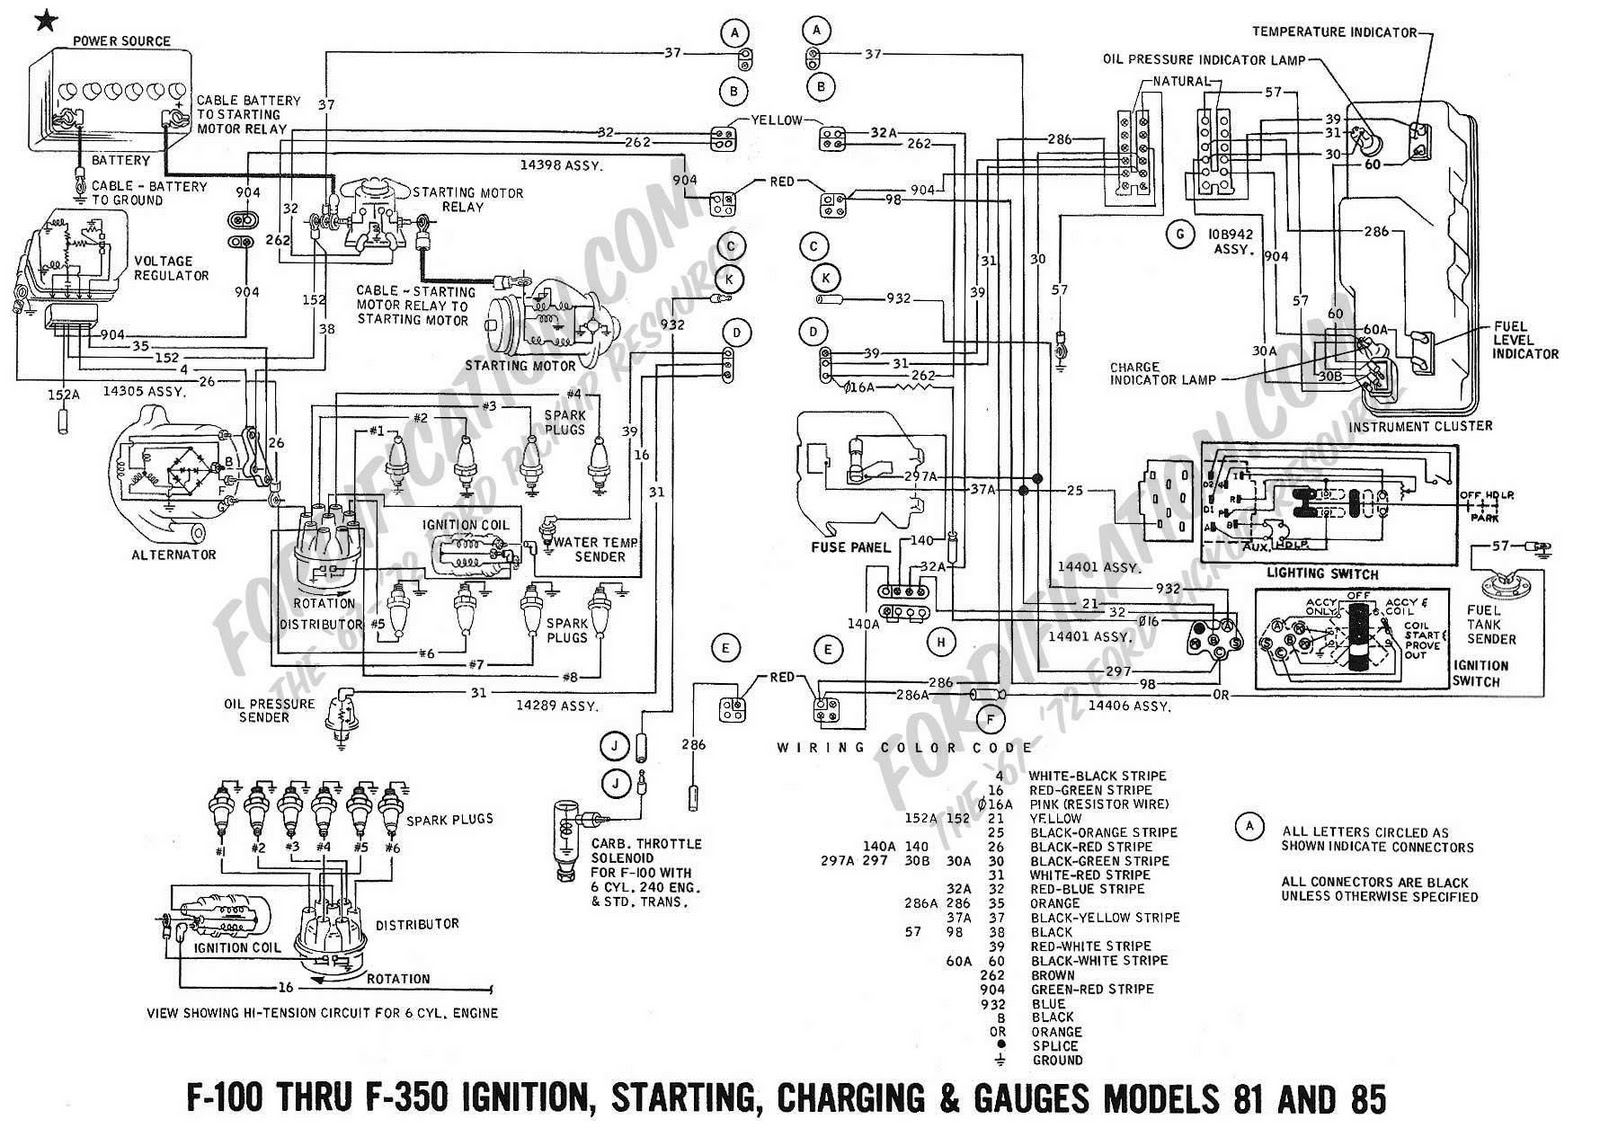 1969 ford resistor wire diagram wiring schematic diagram Ford Alternator Regulator Wiring 1969 ford ignition switch diagram wiring block diagram receiver wire diagram 72 ford truck ignition switch